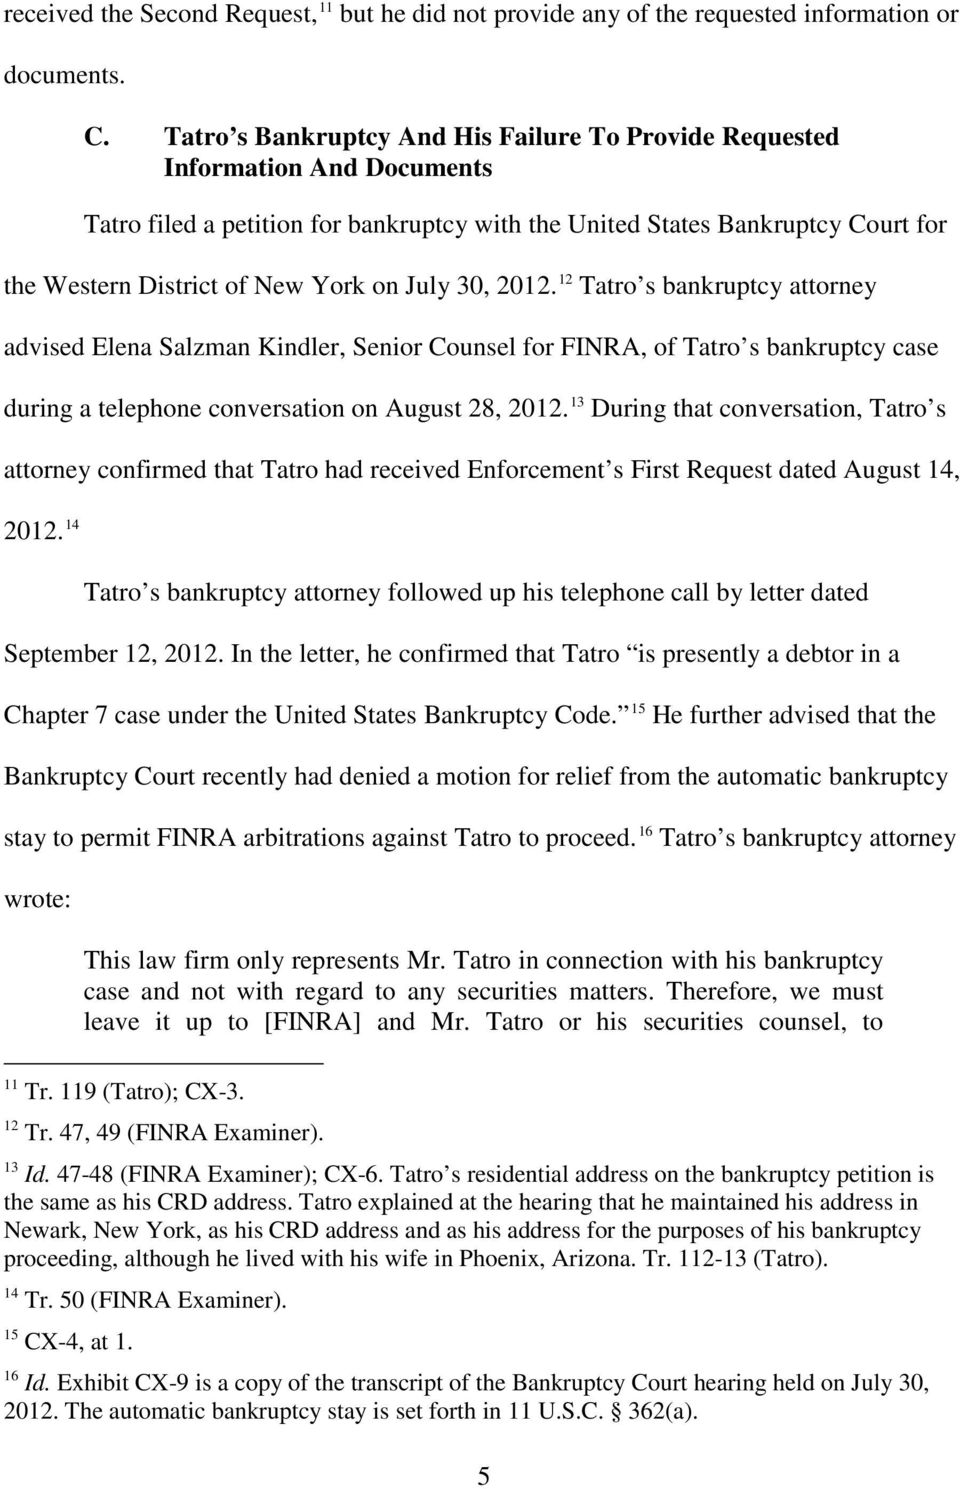 July 30, 2012. 12 Tatro s bankruptcy attorney advised Elena Salzman Kindler, Senior Counsel for FINRA, of Tatro s bankruptcy case during a telephone conversation on August 28, 2012.